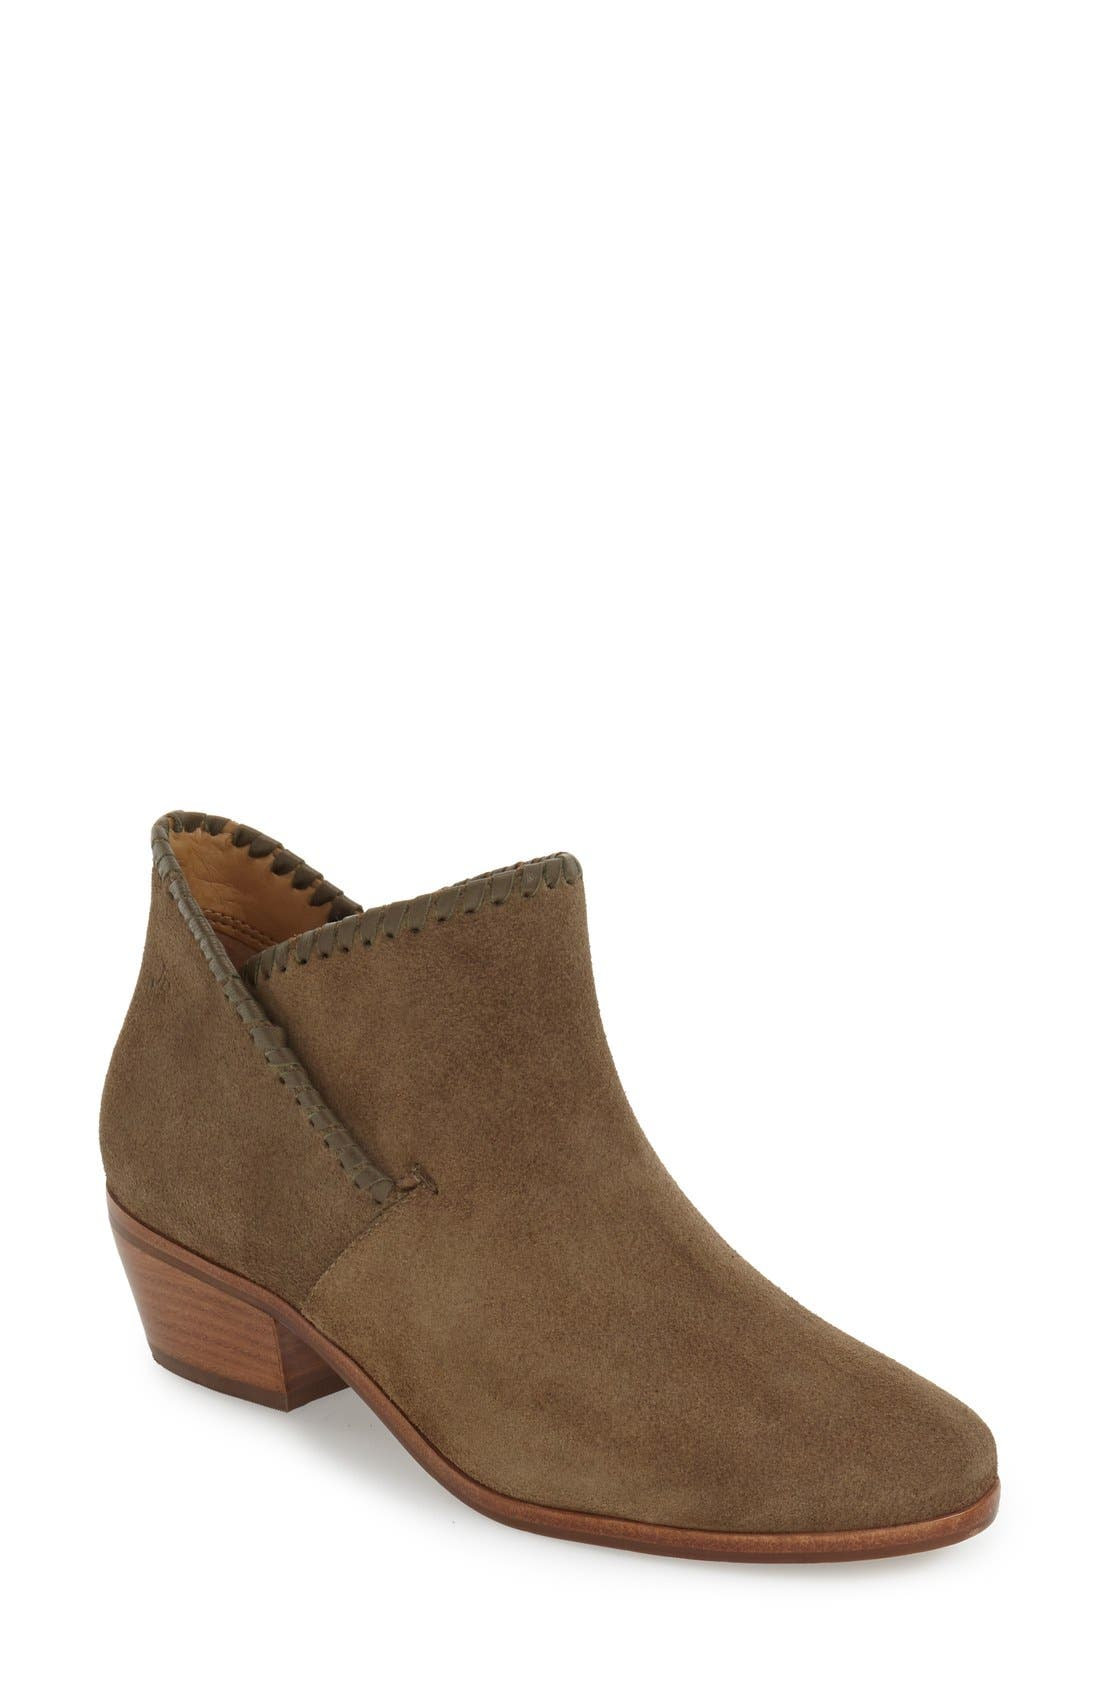 'Sadie' Bootie,                         Main,                         color, Olive Suede